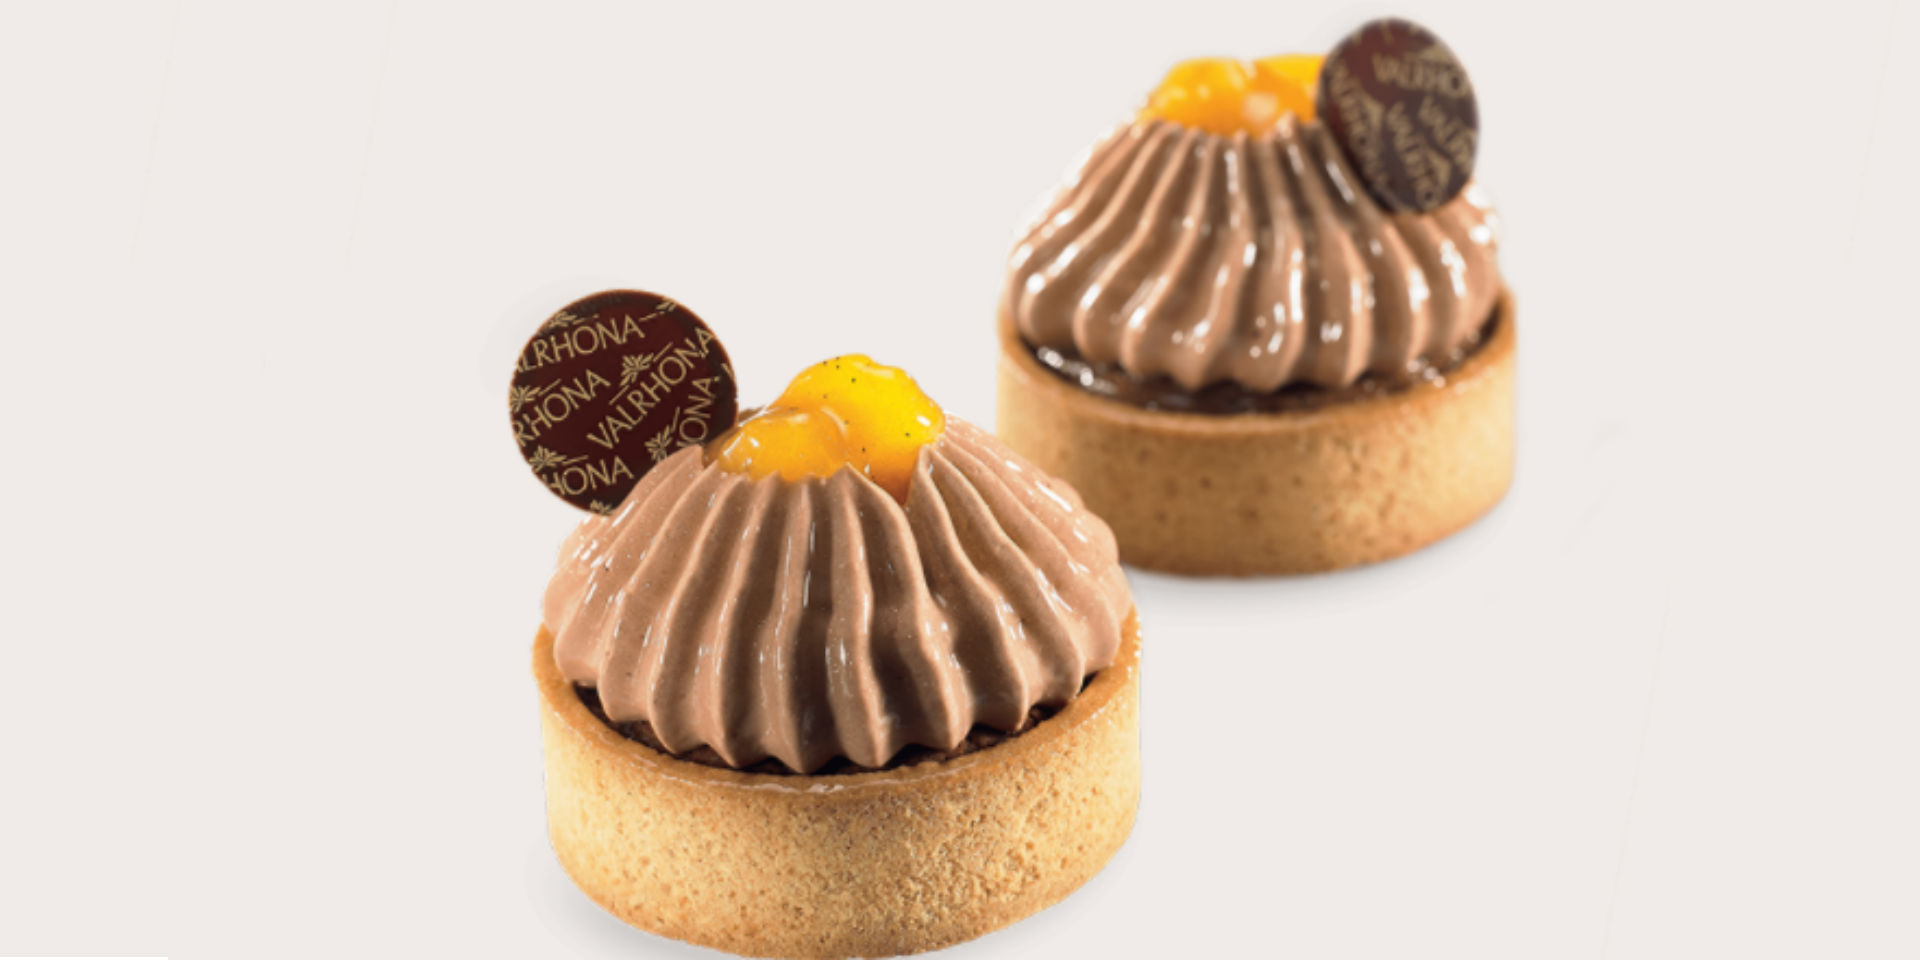 Andy Mannhart brings Pastry Art to your hotel